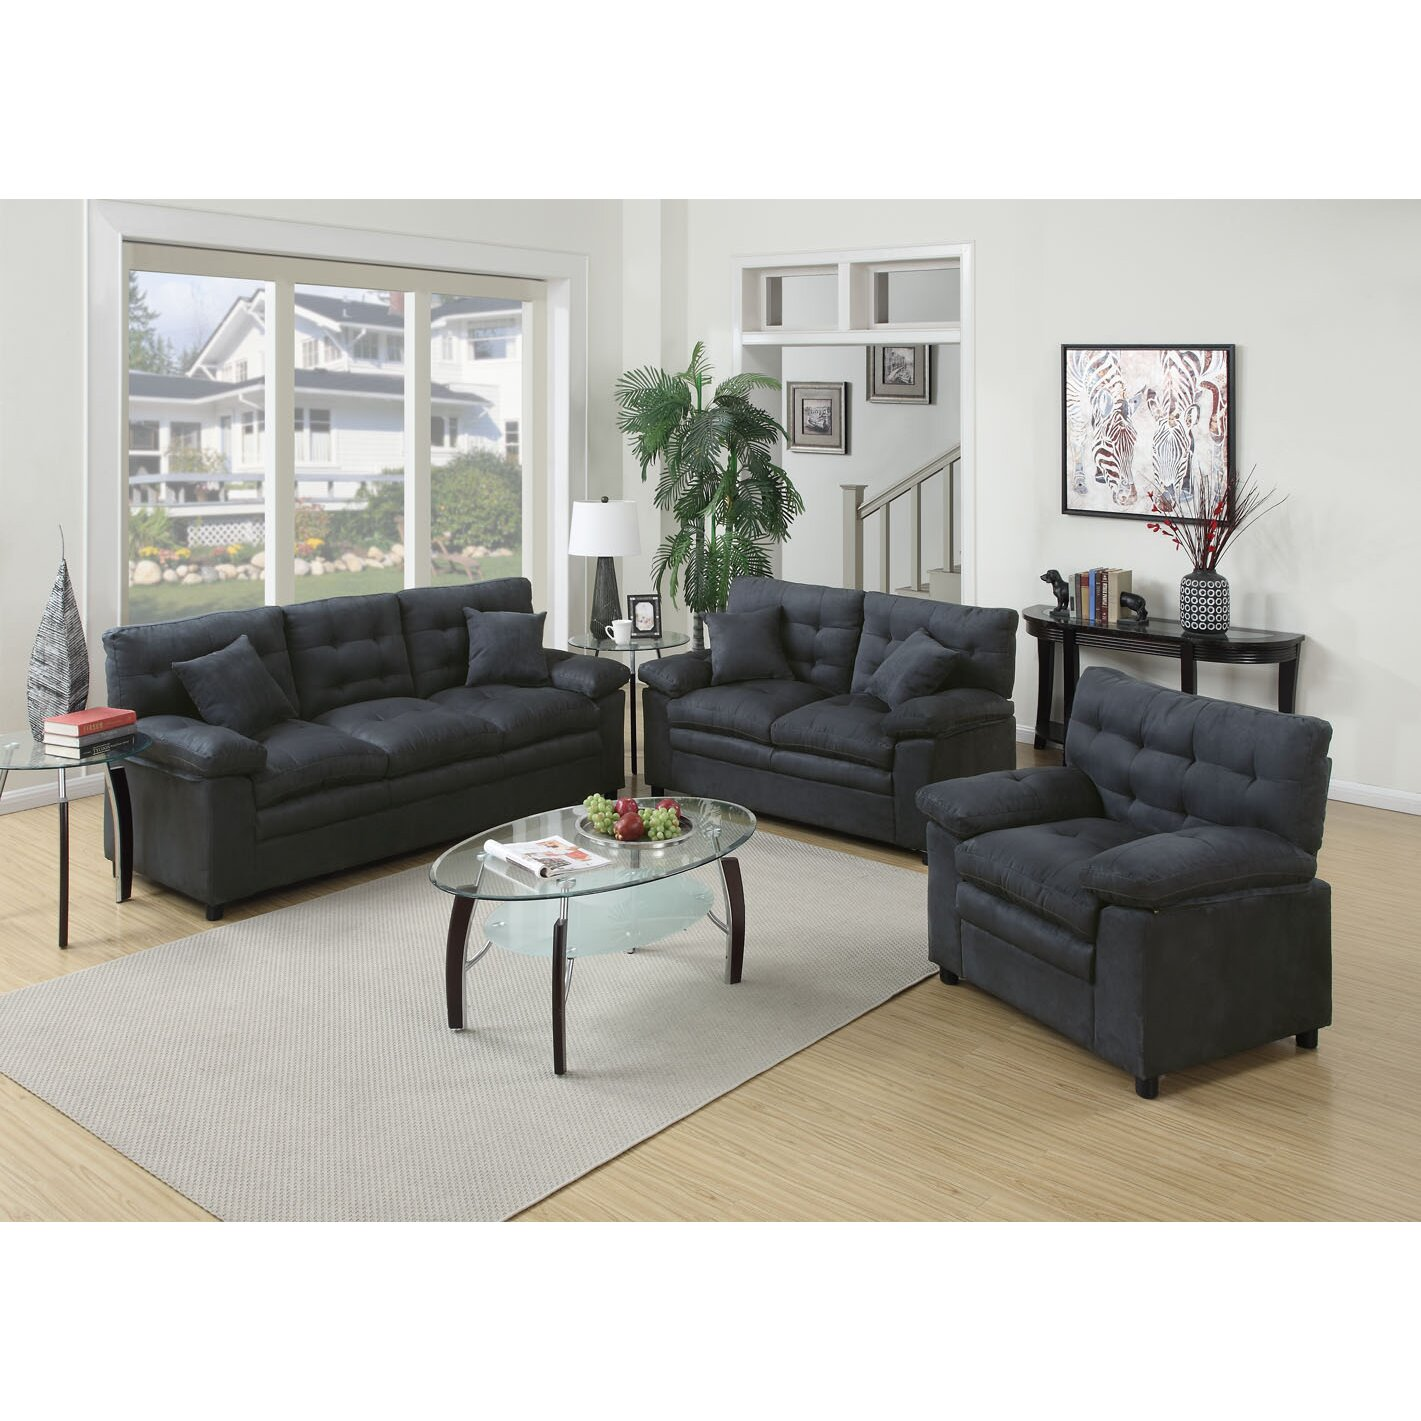 Poundex bobkona colona 3 piece living room set reviews for Living room 5 piece sets